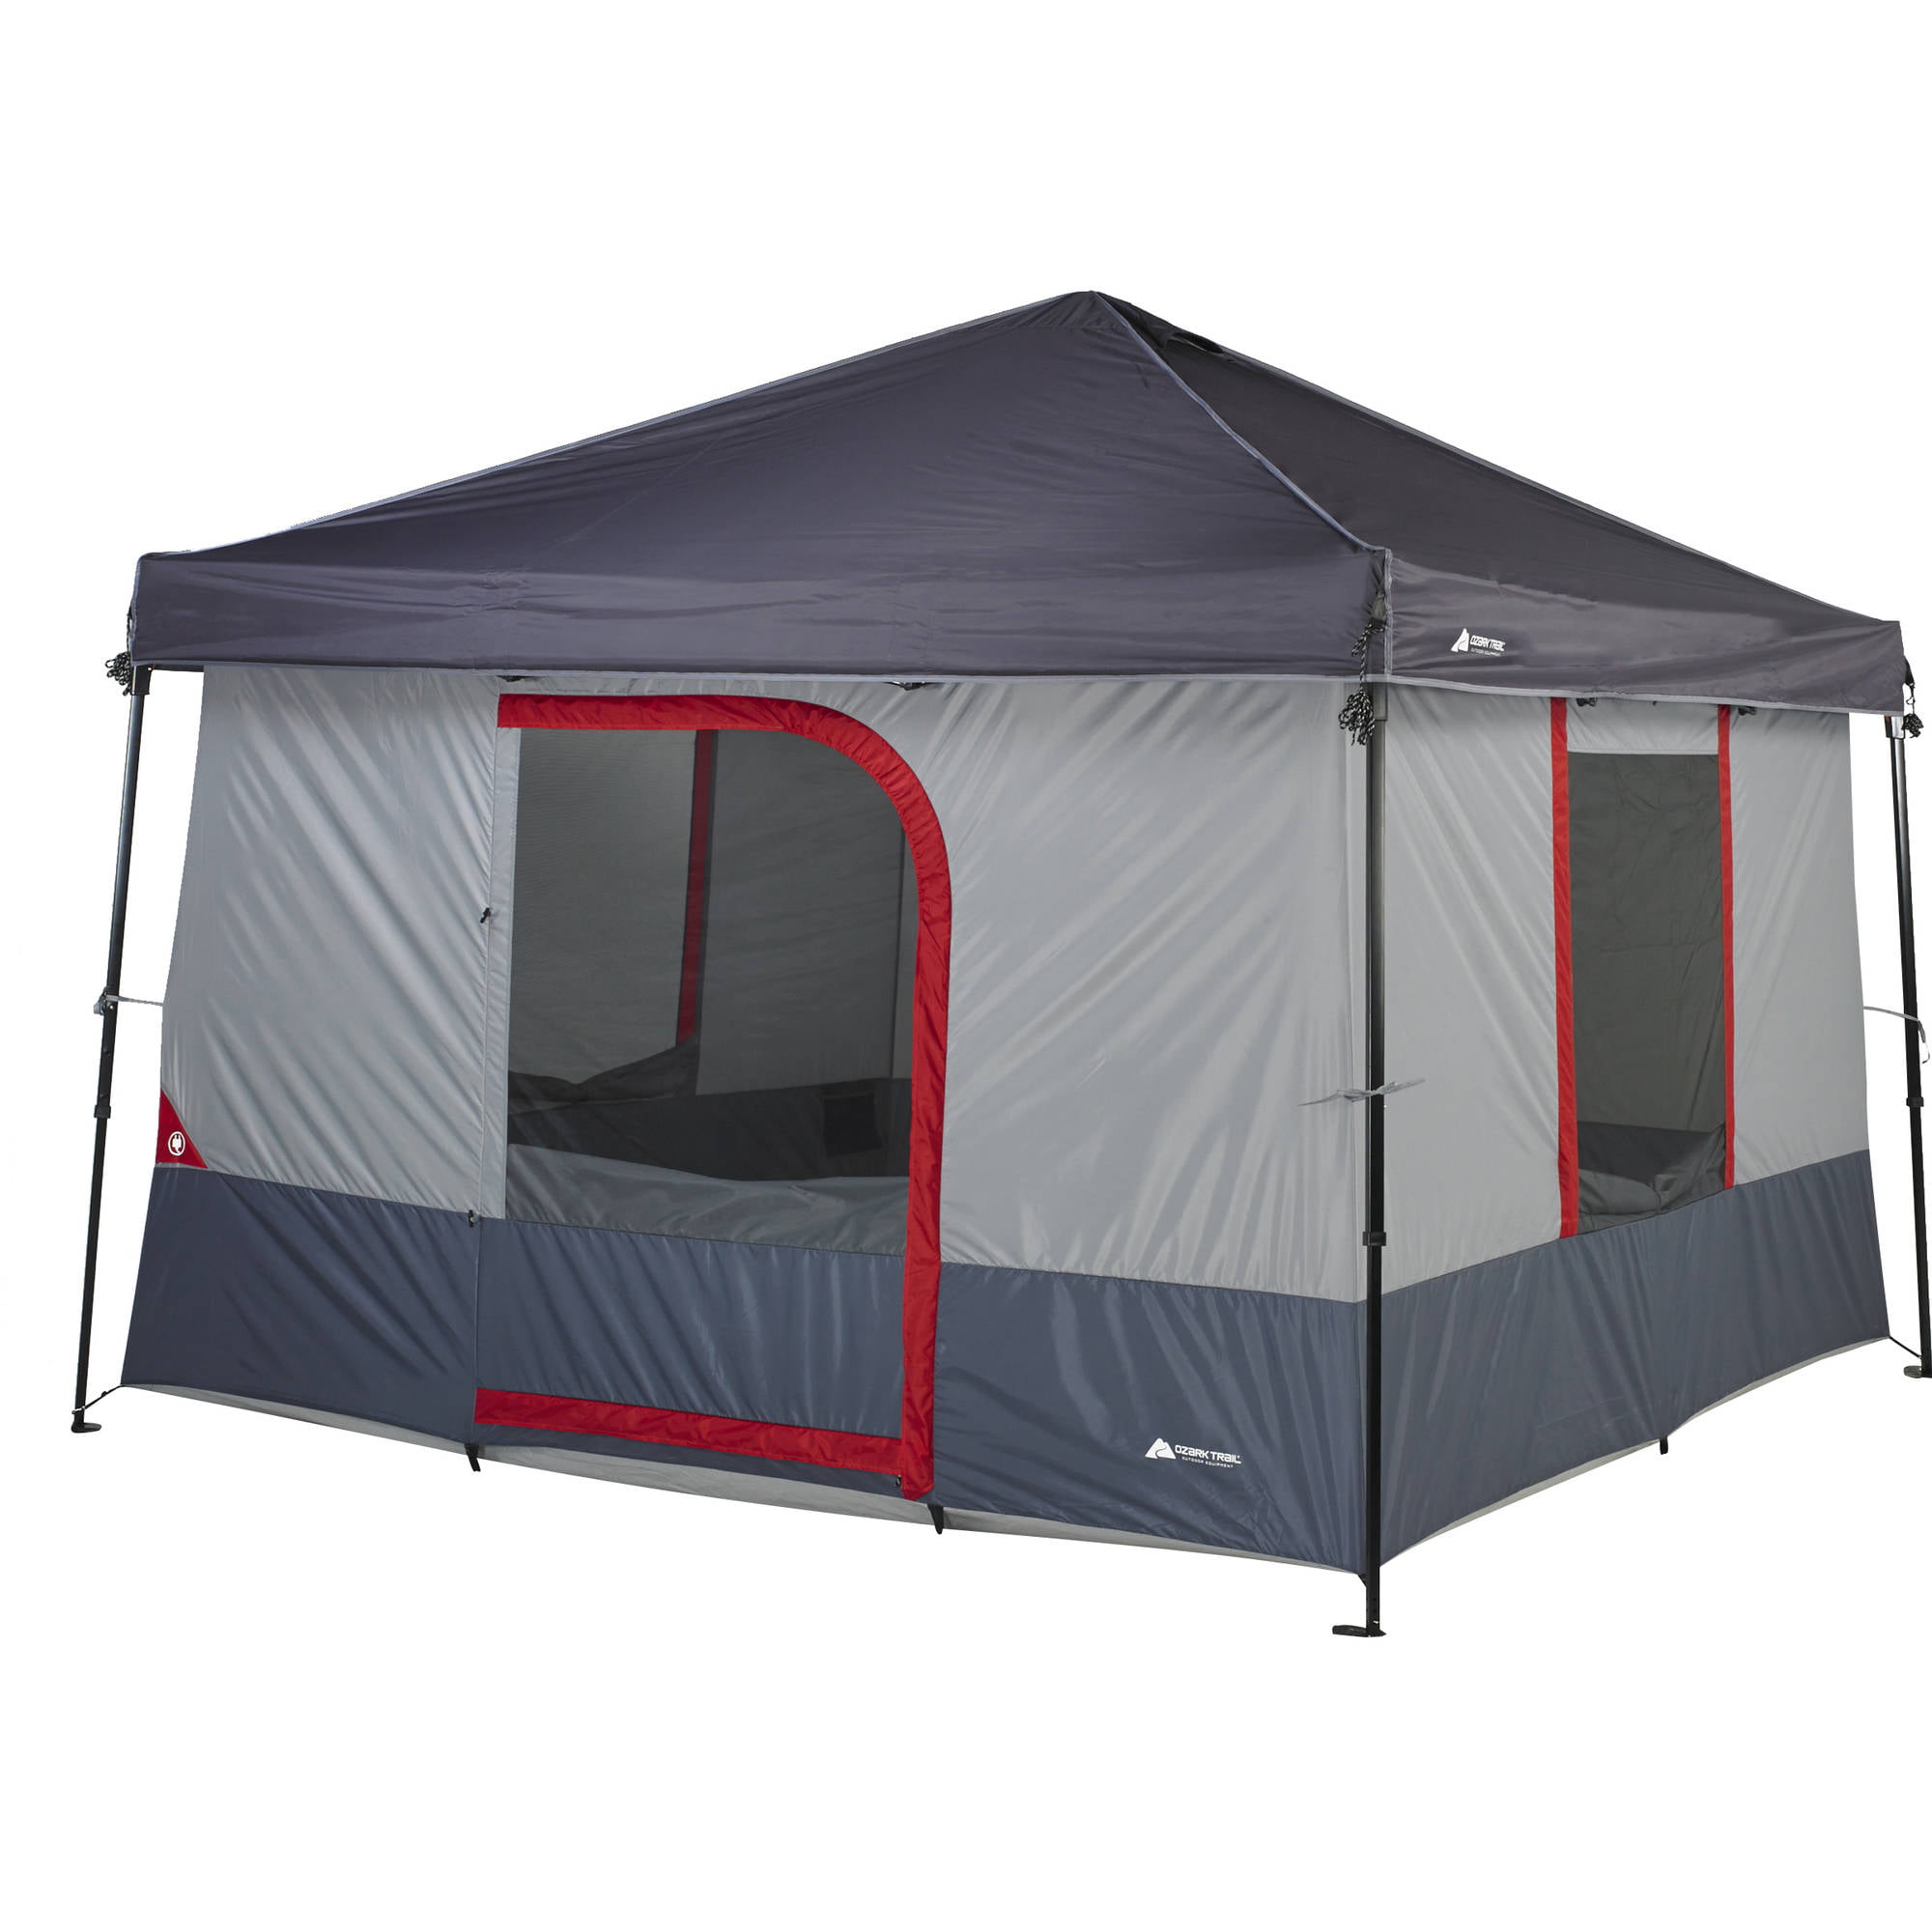 Ozark Trail 6-Person Connectent for Canopy C&ing Tent 616604903380 | eBay  sc 1 st  eBay & Ozark Trail 6-Person Connectent for Canopy Camping Tent ...